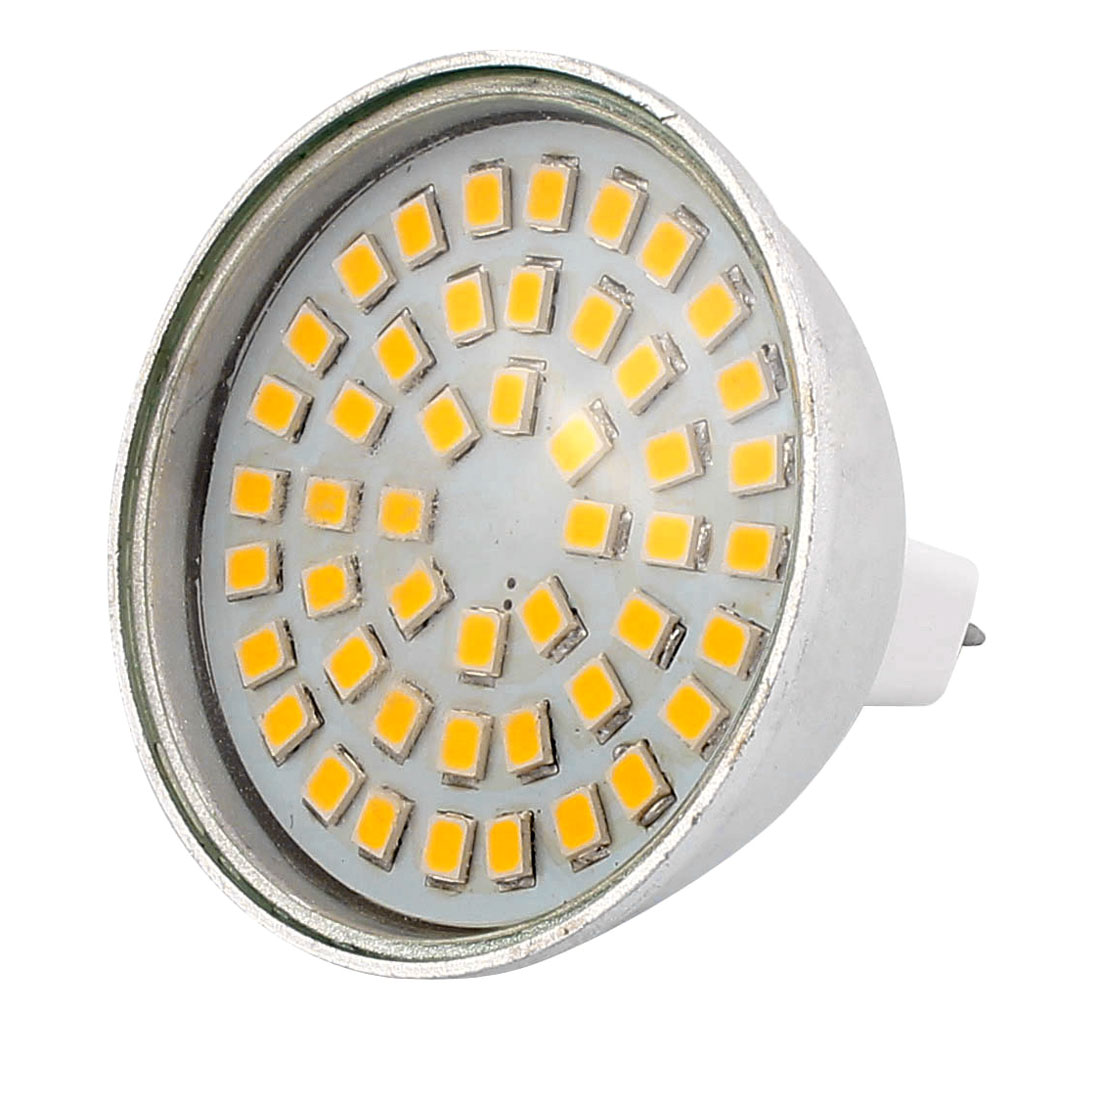 MR16 SMD 2835 48 LEDs 4W Aluminum Energy-Saving LED Bulb Warm White AC 220V-240V